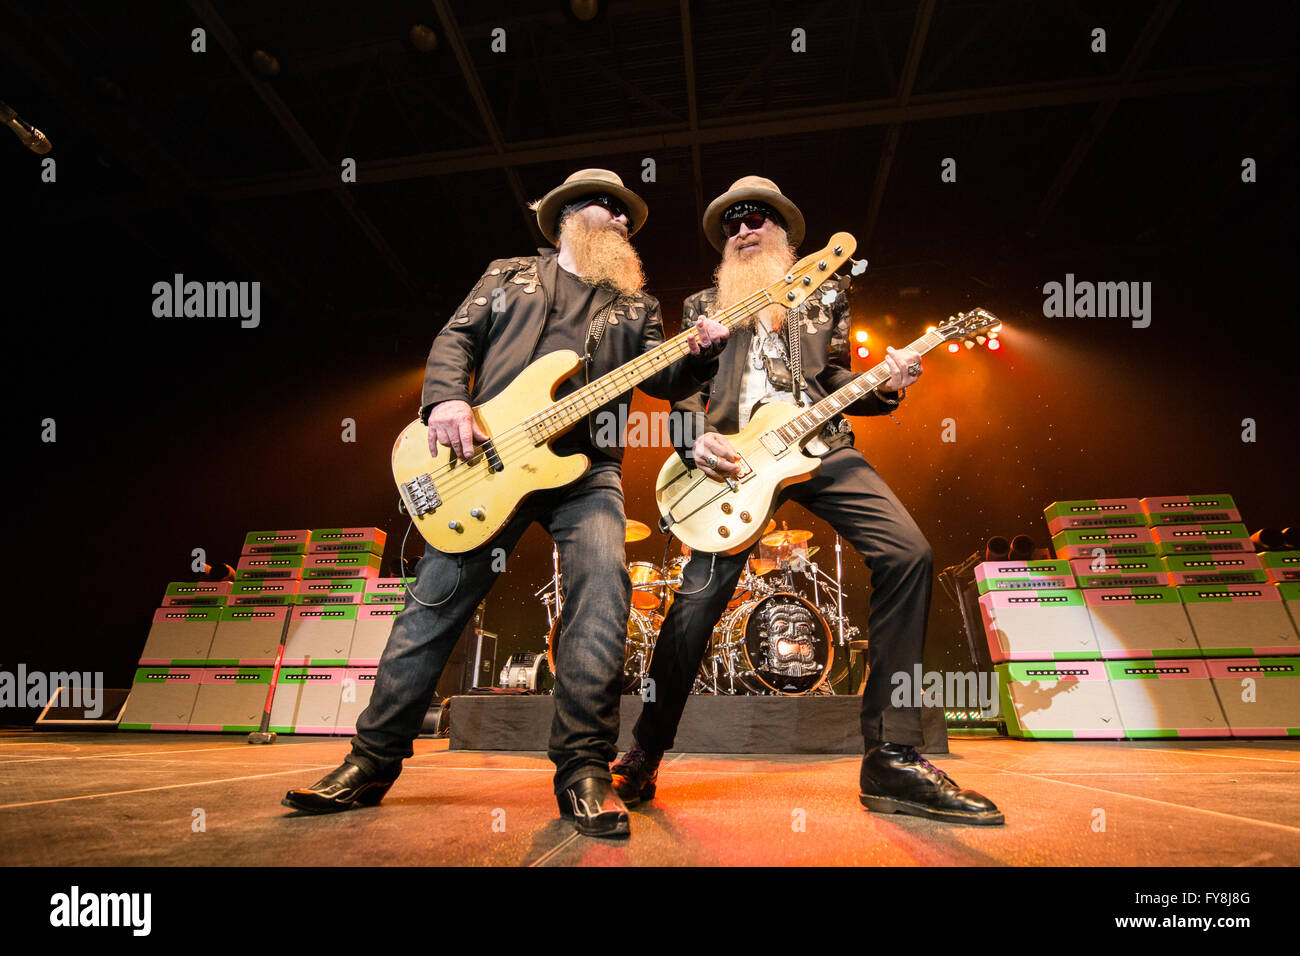 Billy Gibbons and Dusty Hill of ZZ Top @ Abbotsford Centre in Abbotsford, BC on April 7th 2016 - Stock Image